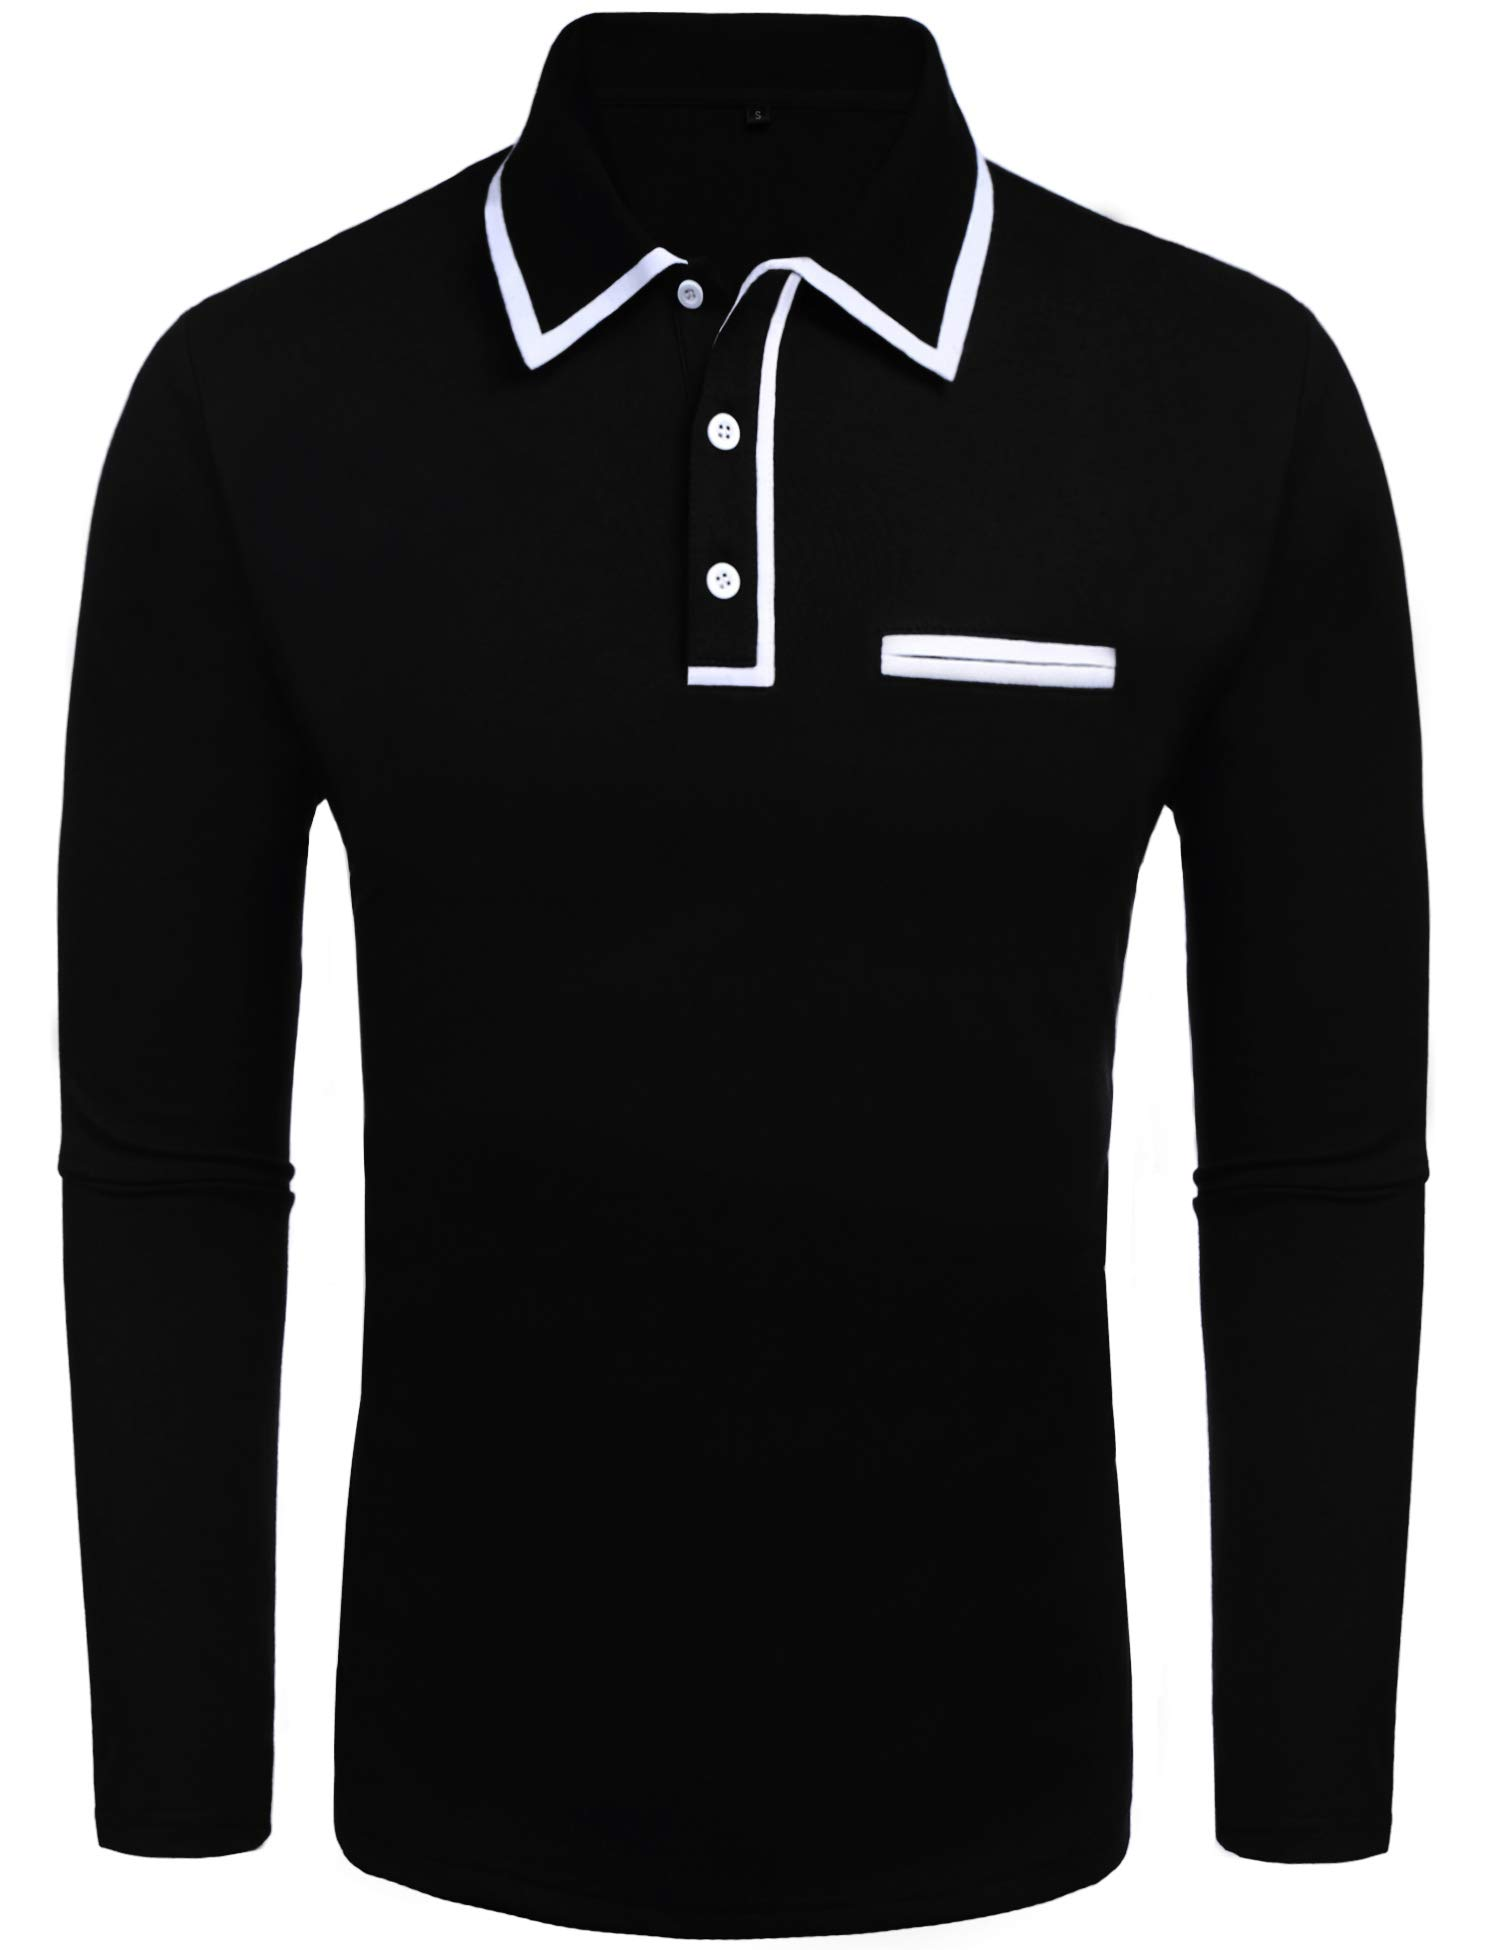 Daupanzees Men's Classic Casual Long Sleeve White Elastic Ribbed Collar Jersey Polo Shirt